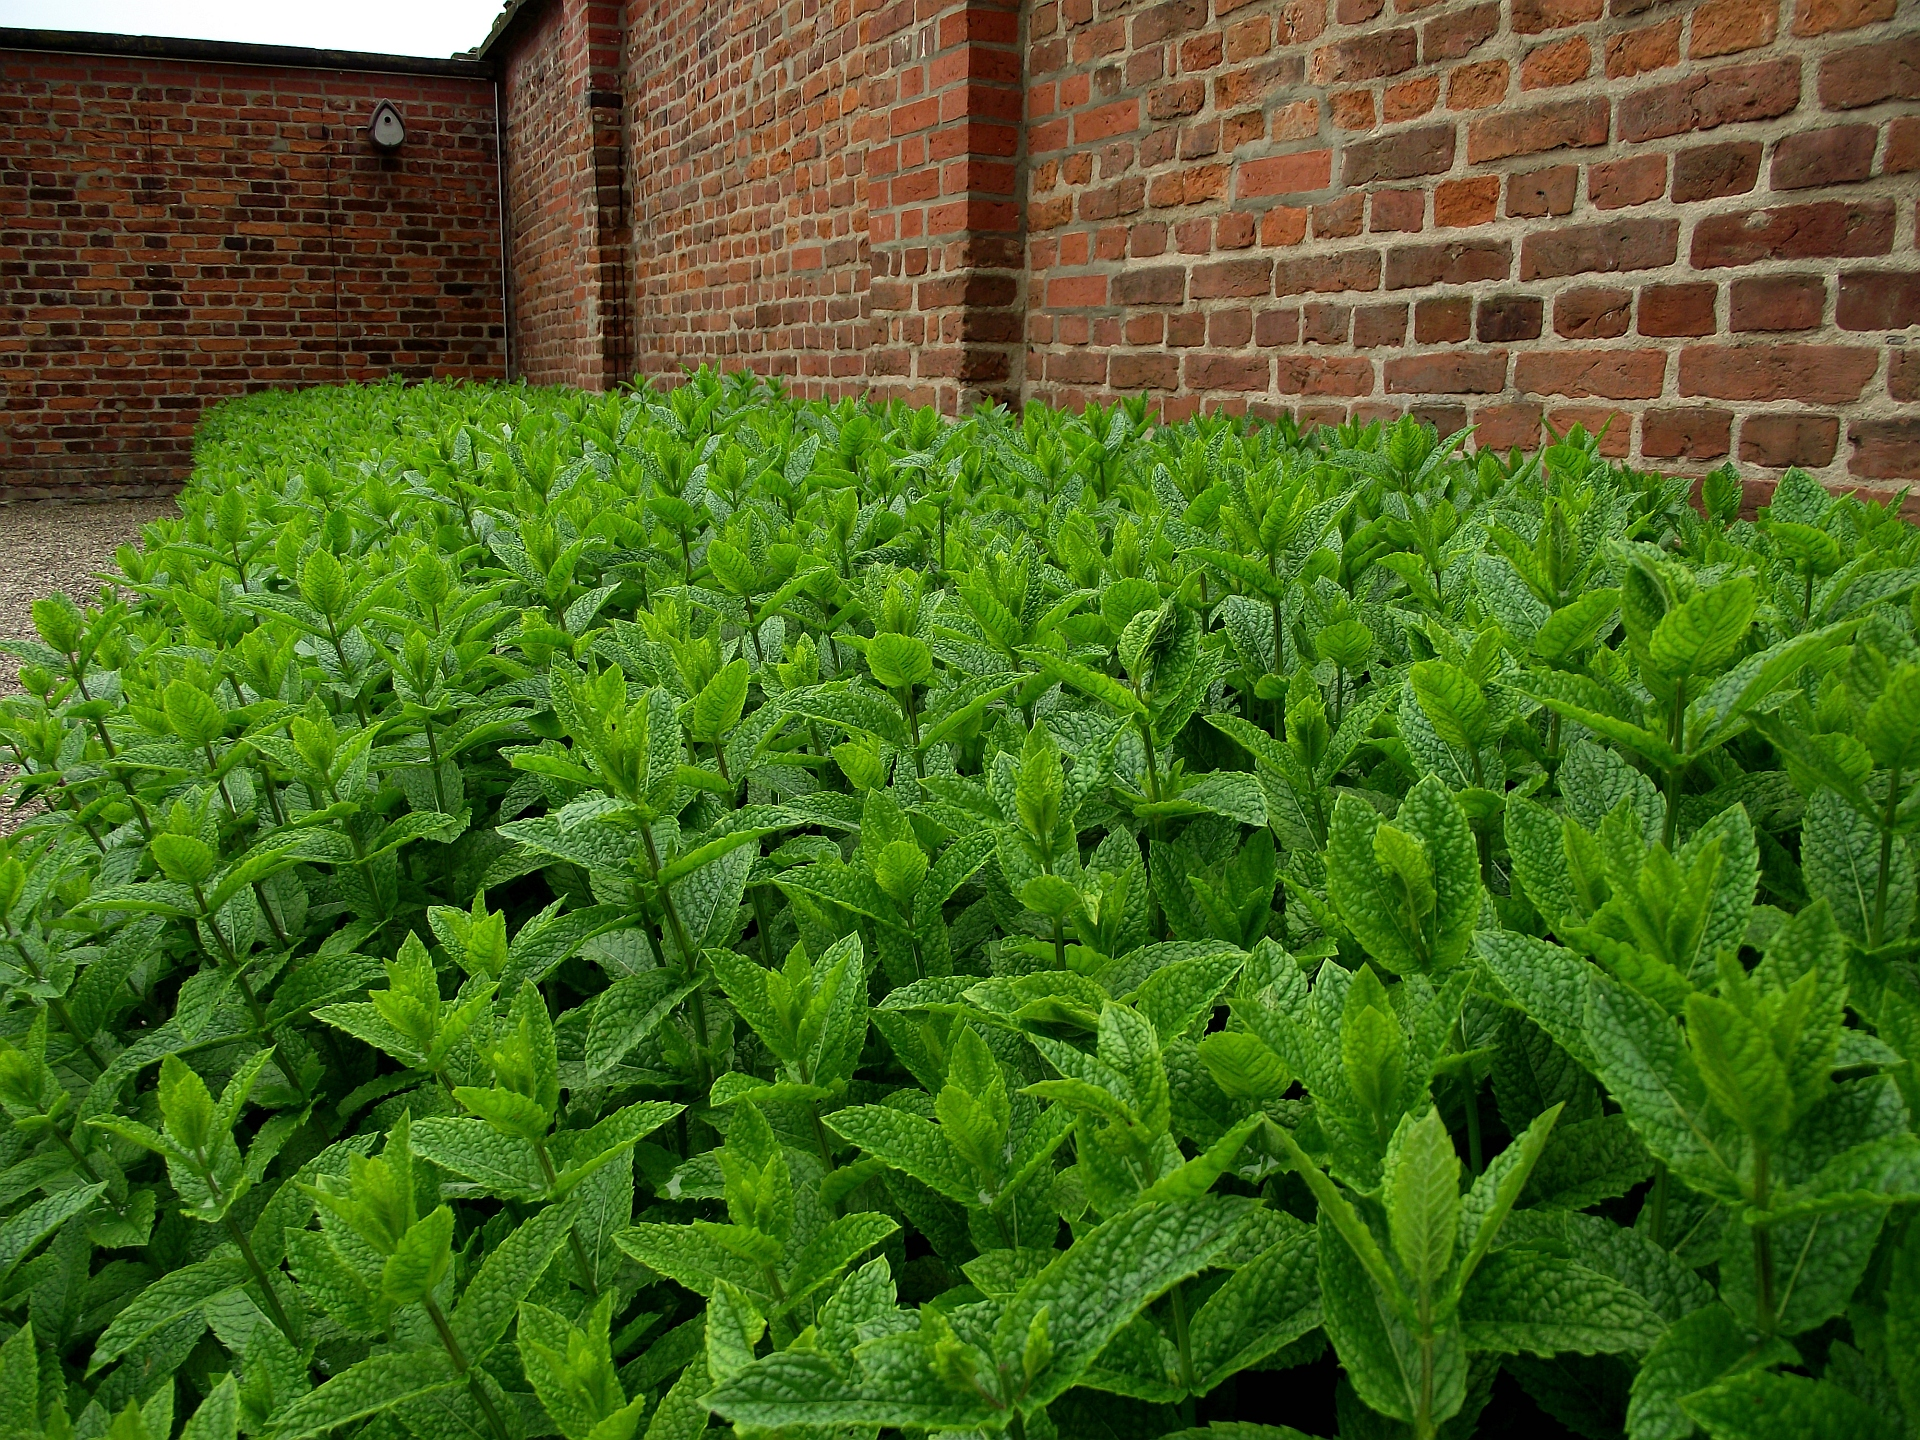 Field of Mentha x piperita 03.jpg